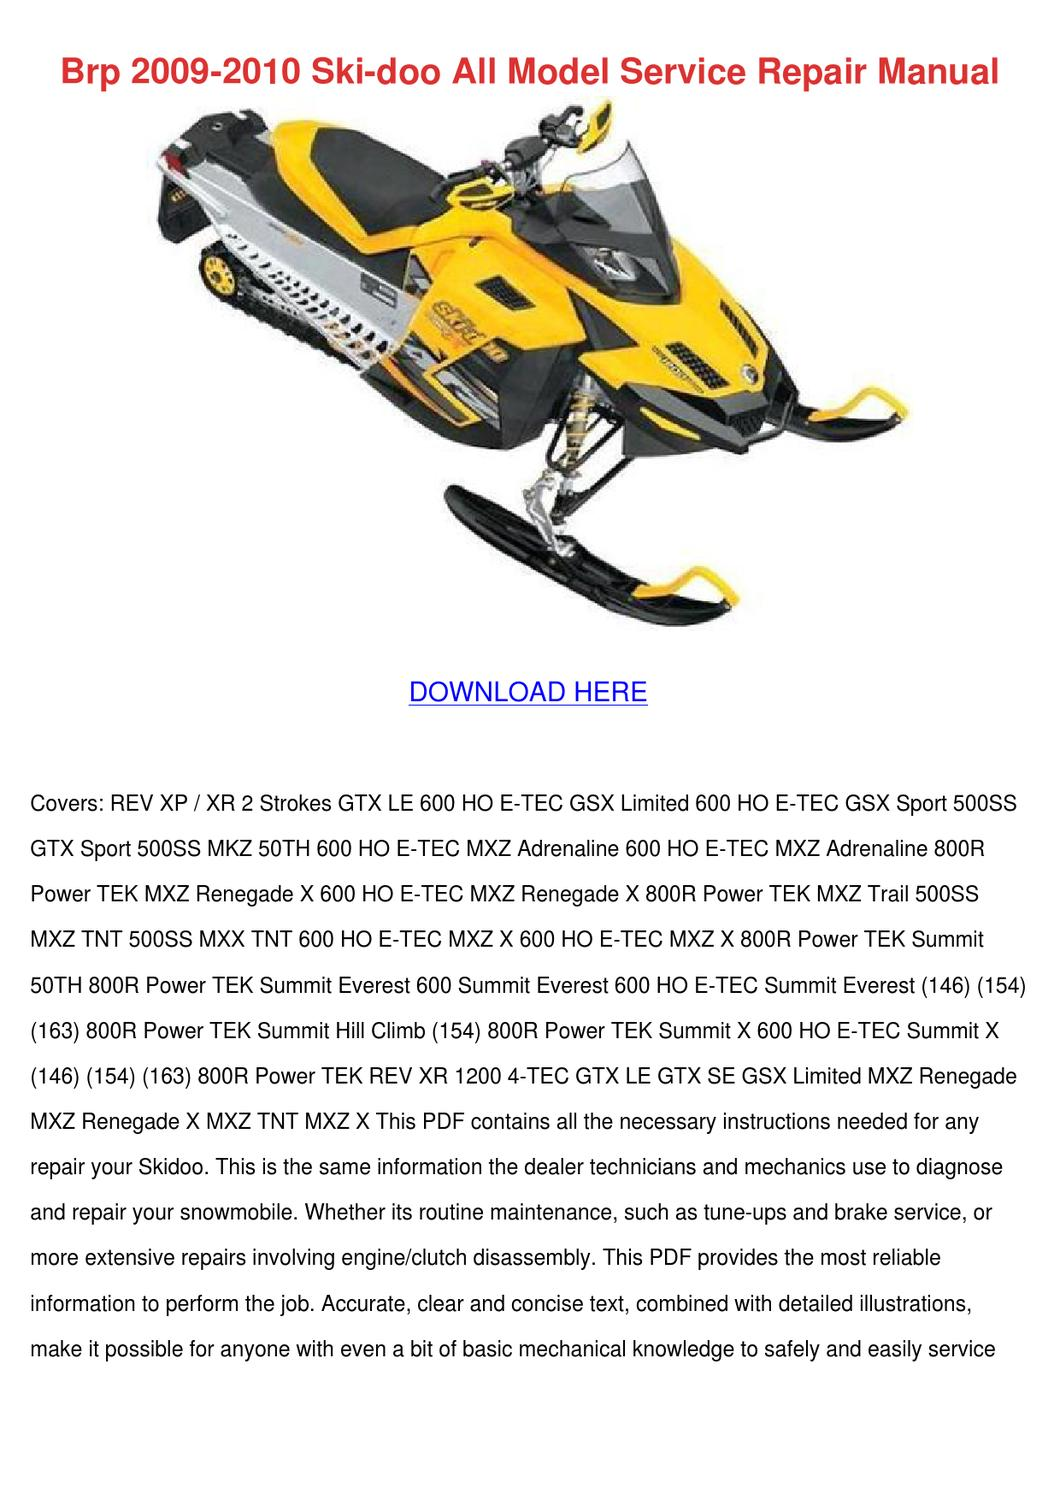 brp 2009 2010 ski doo all model service repai by juanitaharding issuu rh issuu com brp commander service manual brp rally 200 service manual